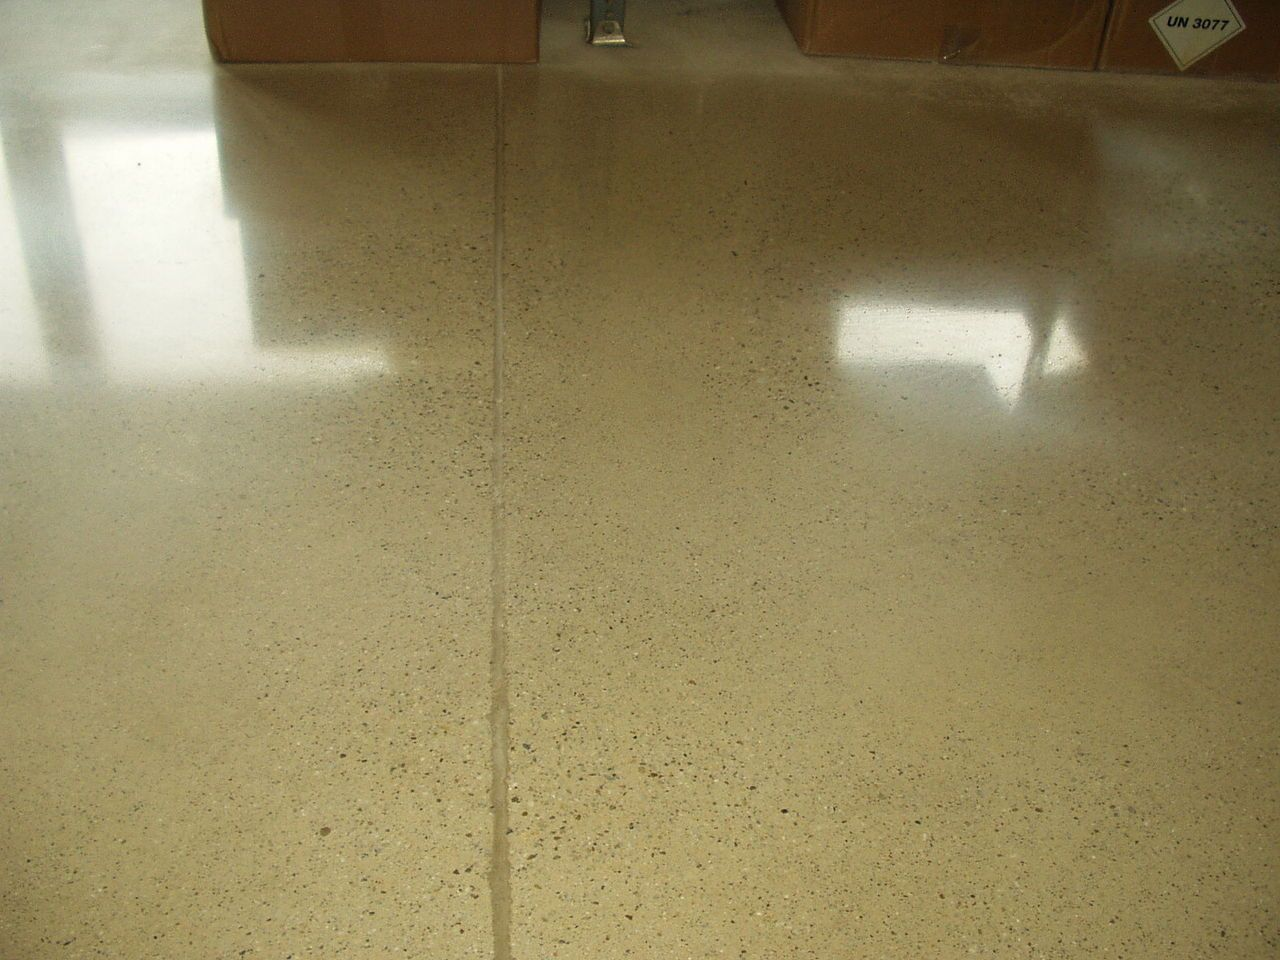 Polished concrete provides visual elegance as well as durability in